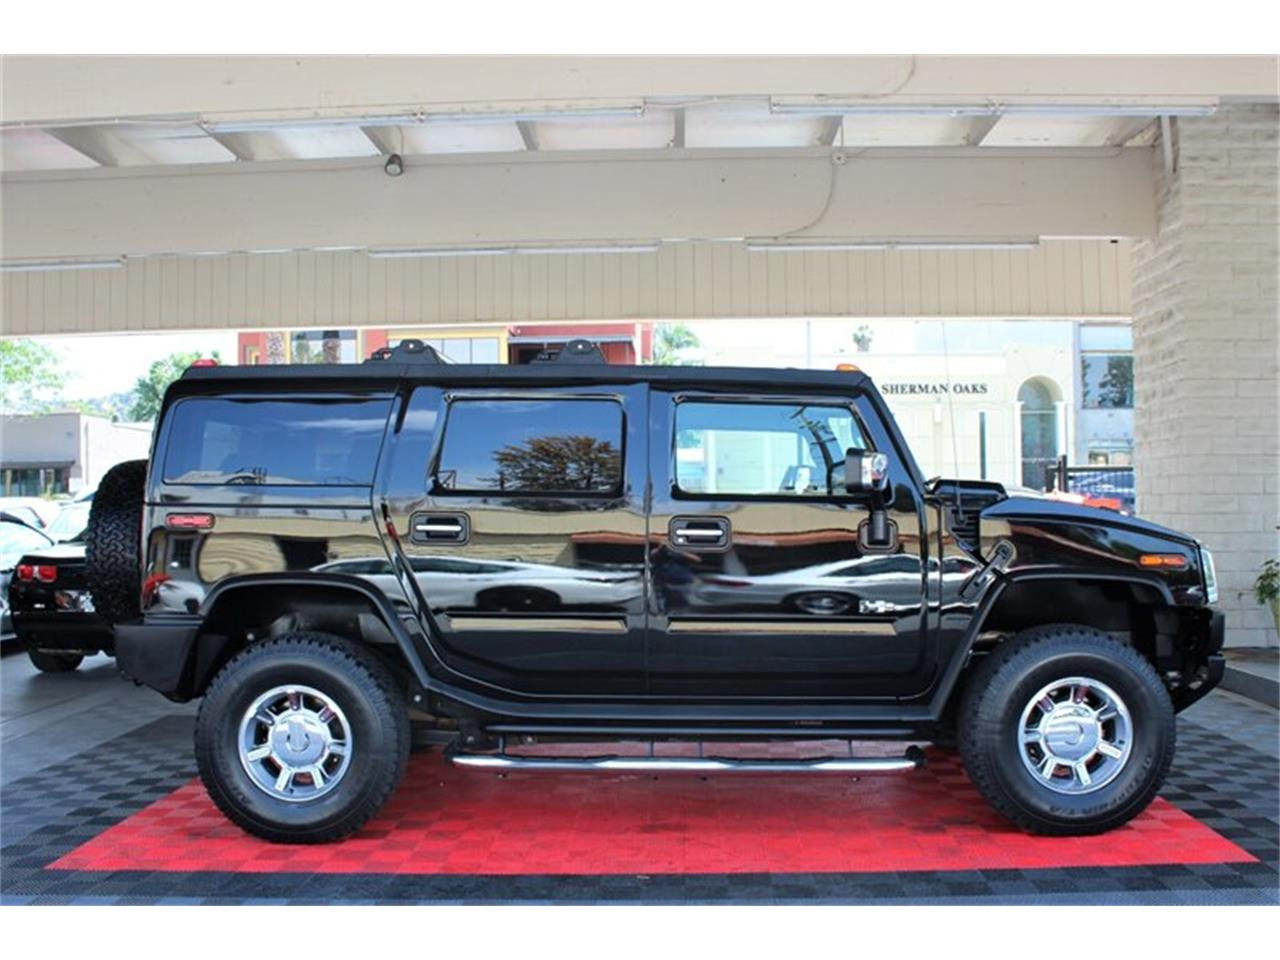 Large Picture of 2005 Hummer H2 located in Sherman Oaks California - $24,995.00 - Q1ZZ